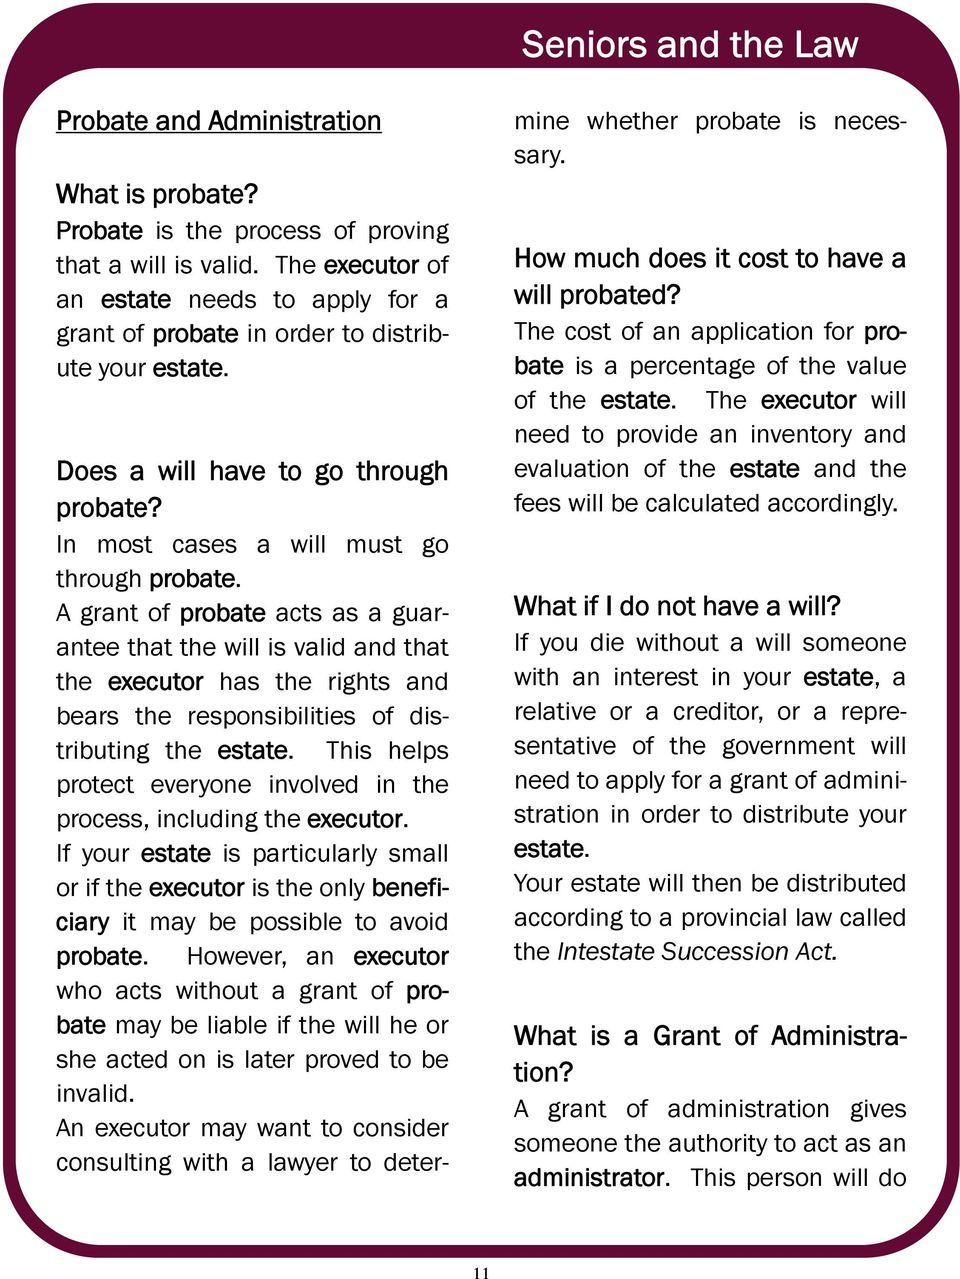 A grant of probate acts as a guarantee that the will is valid and that the executor has the rights and bears the responsibilities of distributing the estate.